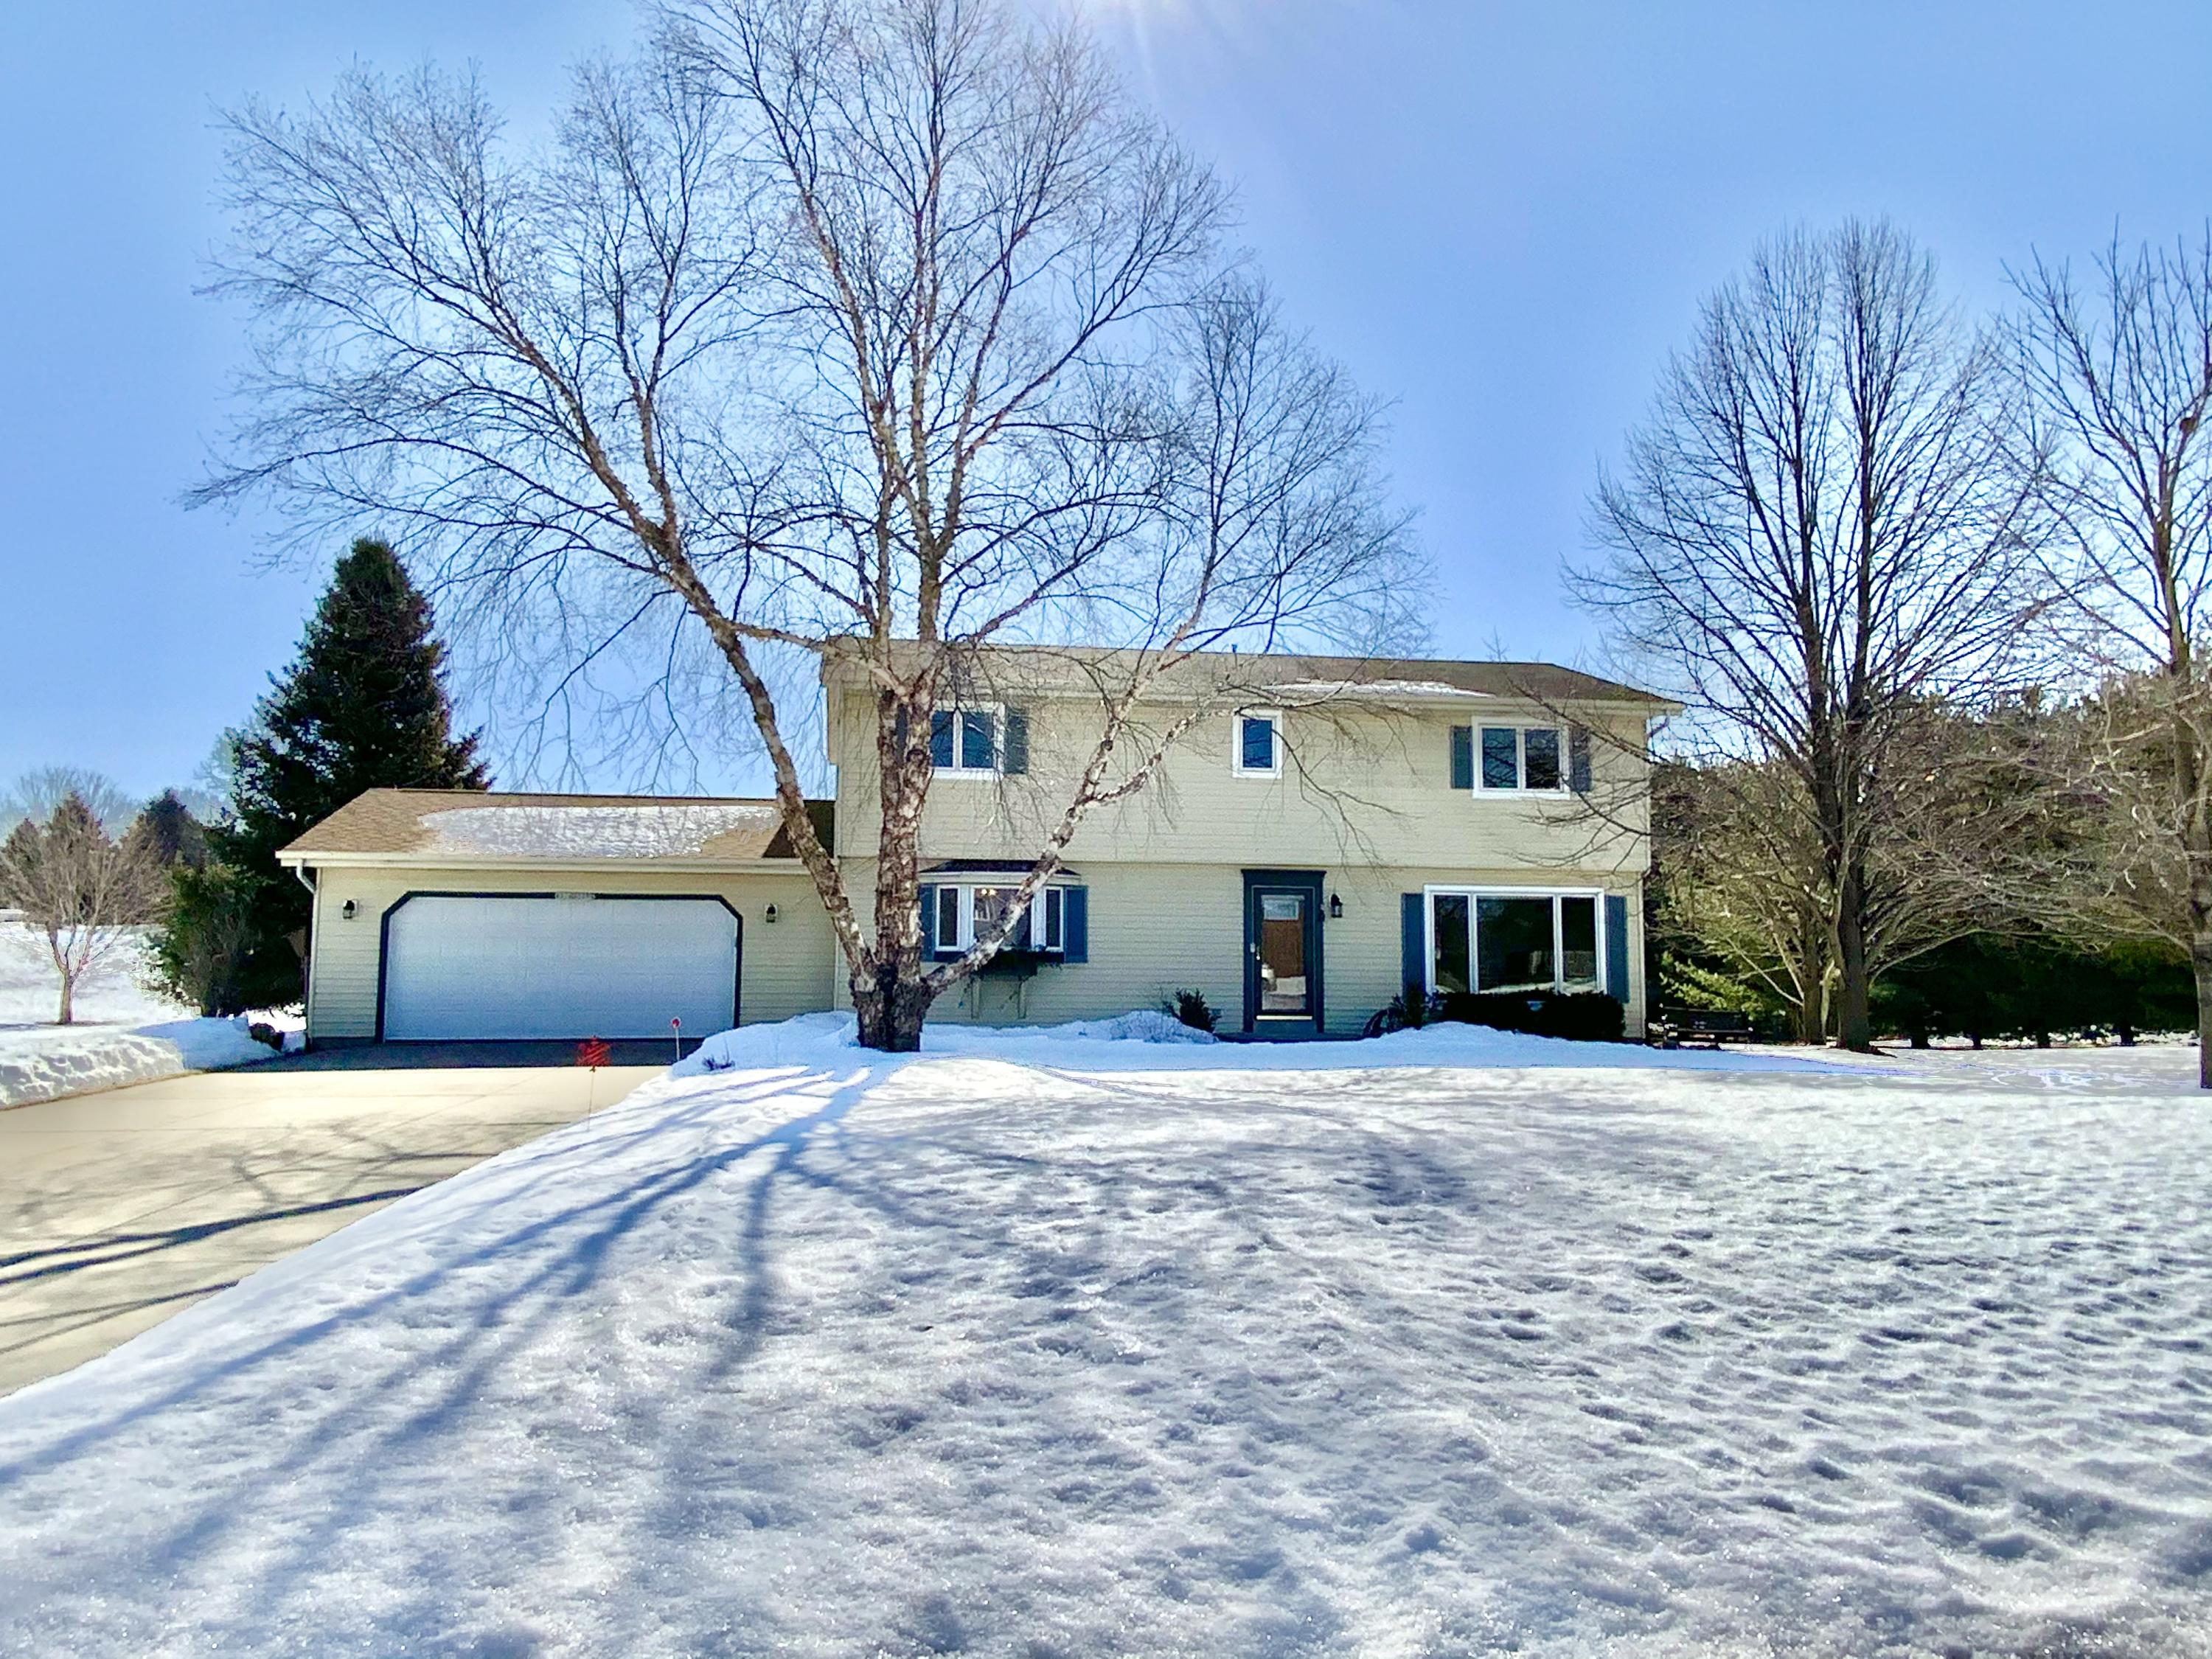 Photo of W319S3250 Squire Rd, Waukesha, WI 53189